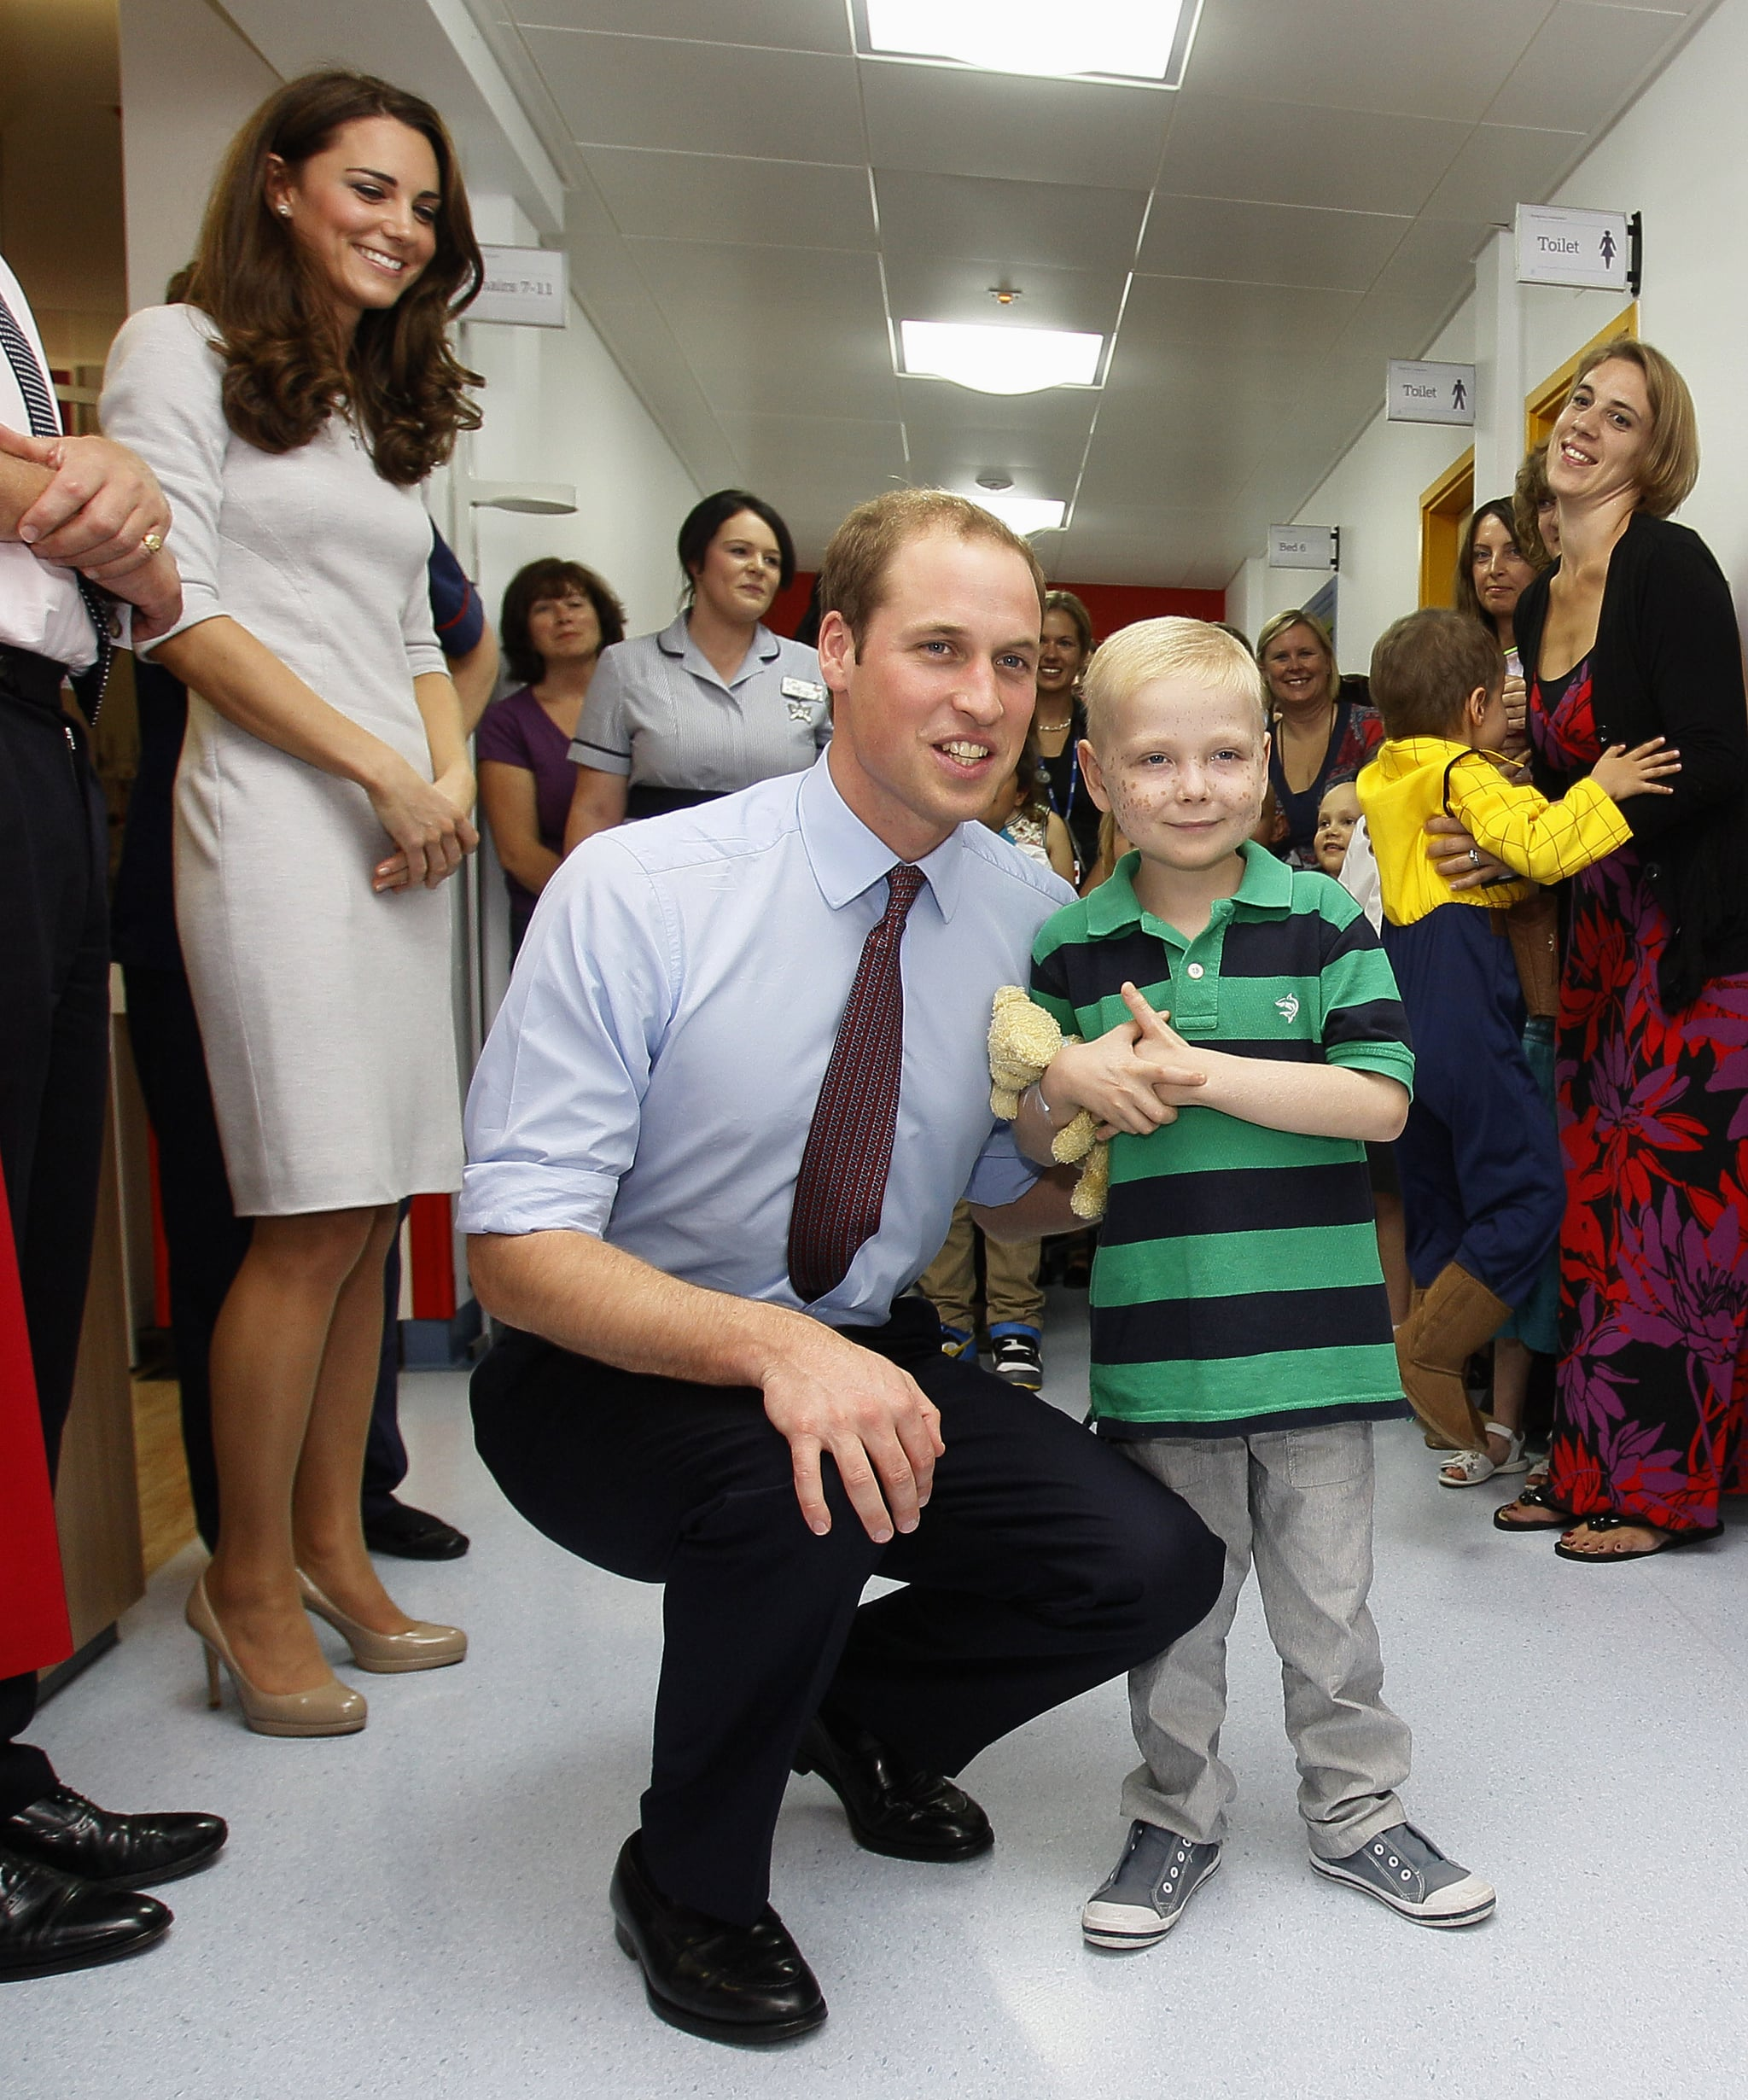 Kate Middleton and Prince William toured the inside of the Royal Marsden hospital.